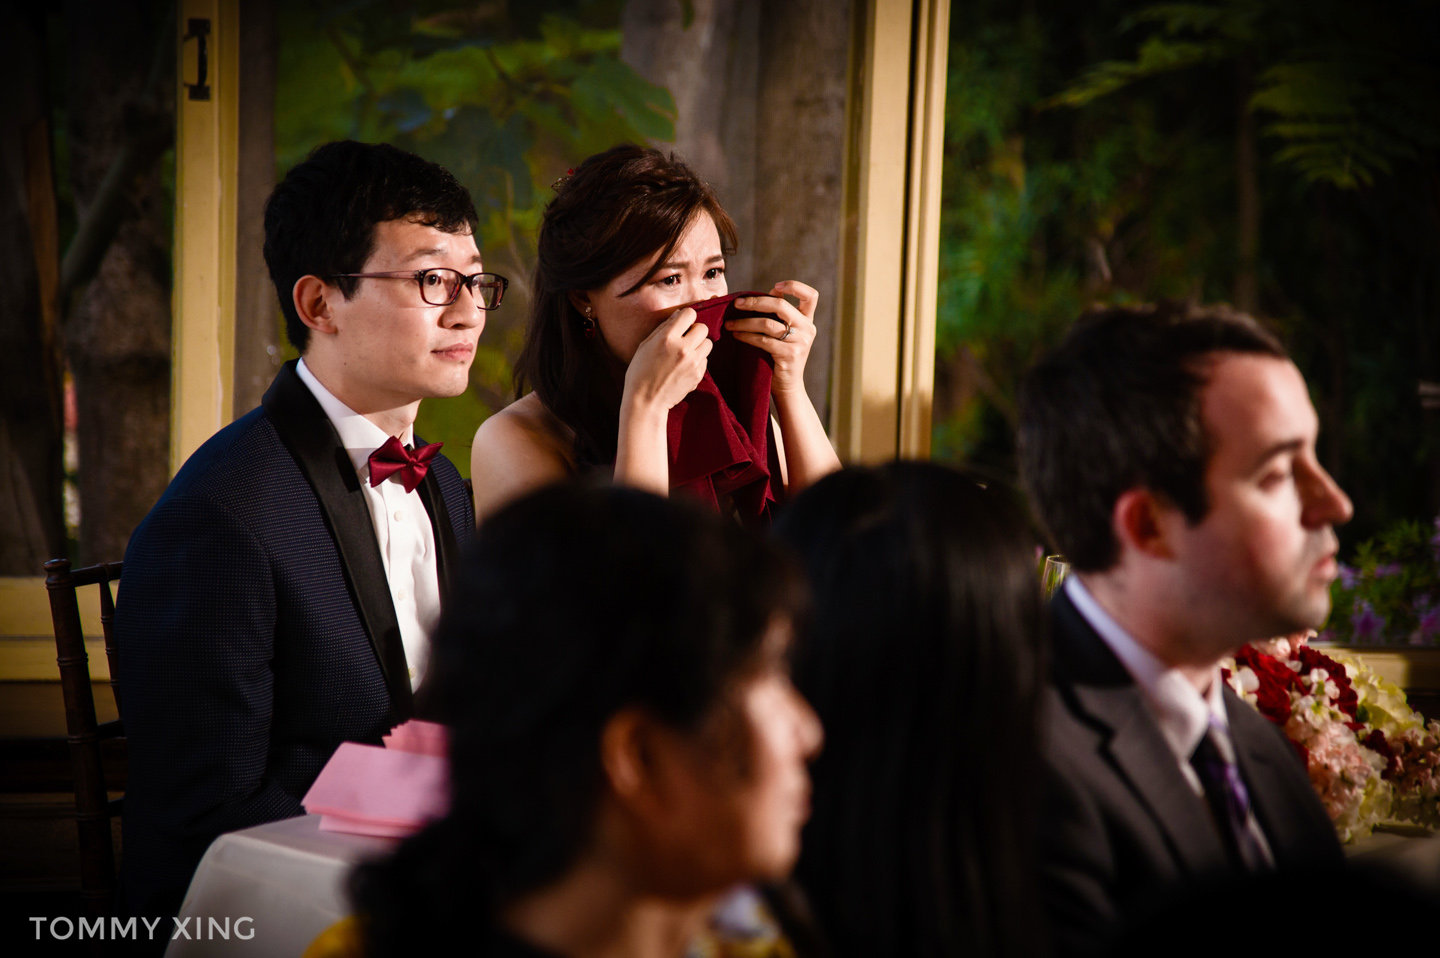 Los Angeles Wedding Photographer 洛杉矶婚礼婚纱摄影师 Tommy Xing-217.JPG